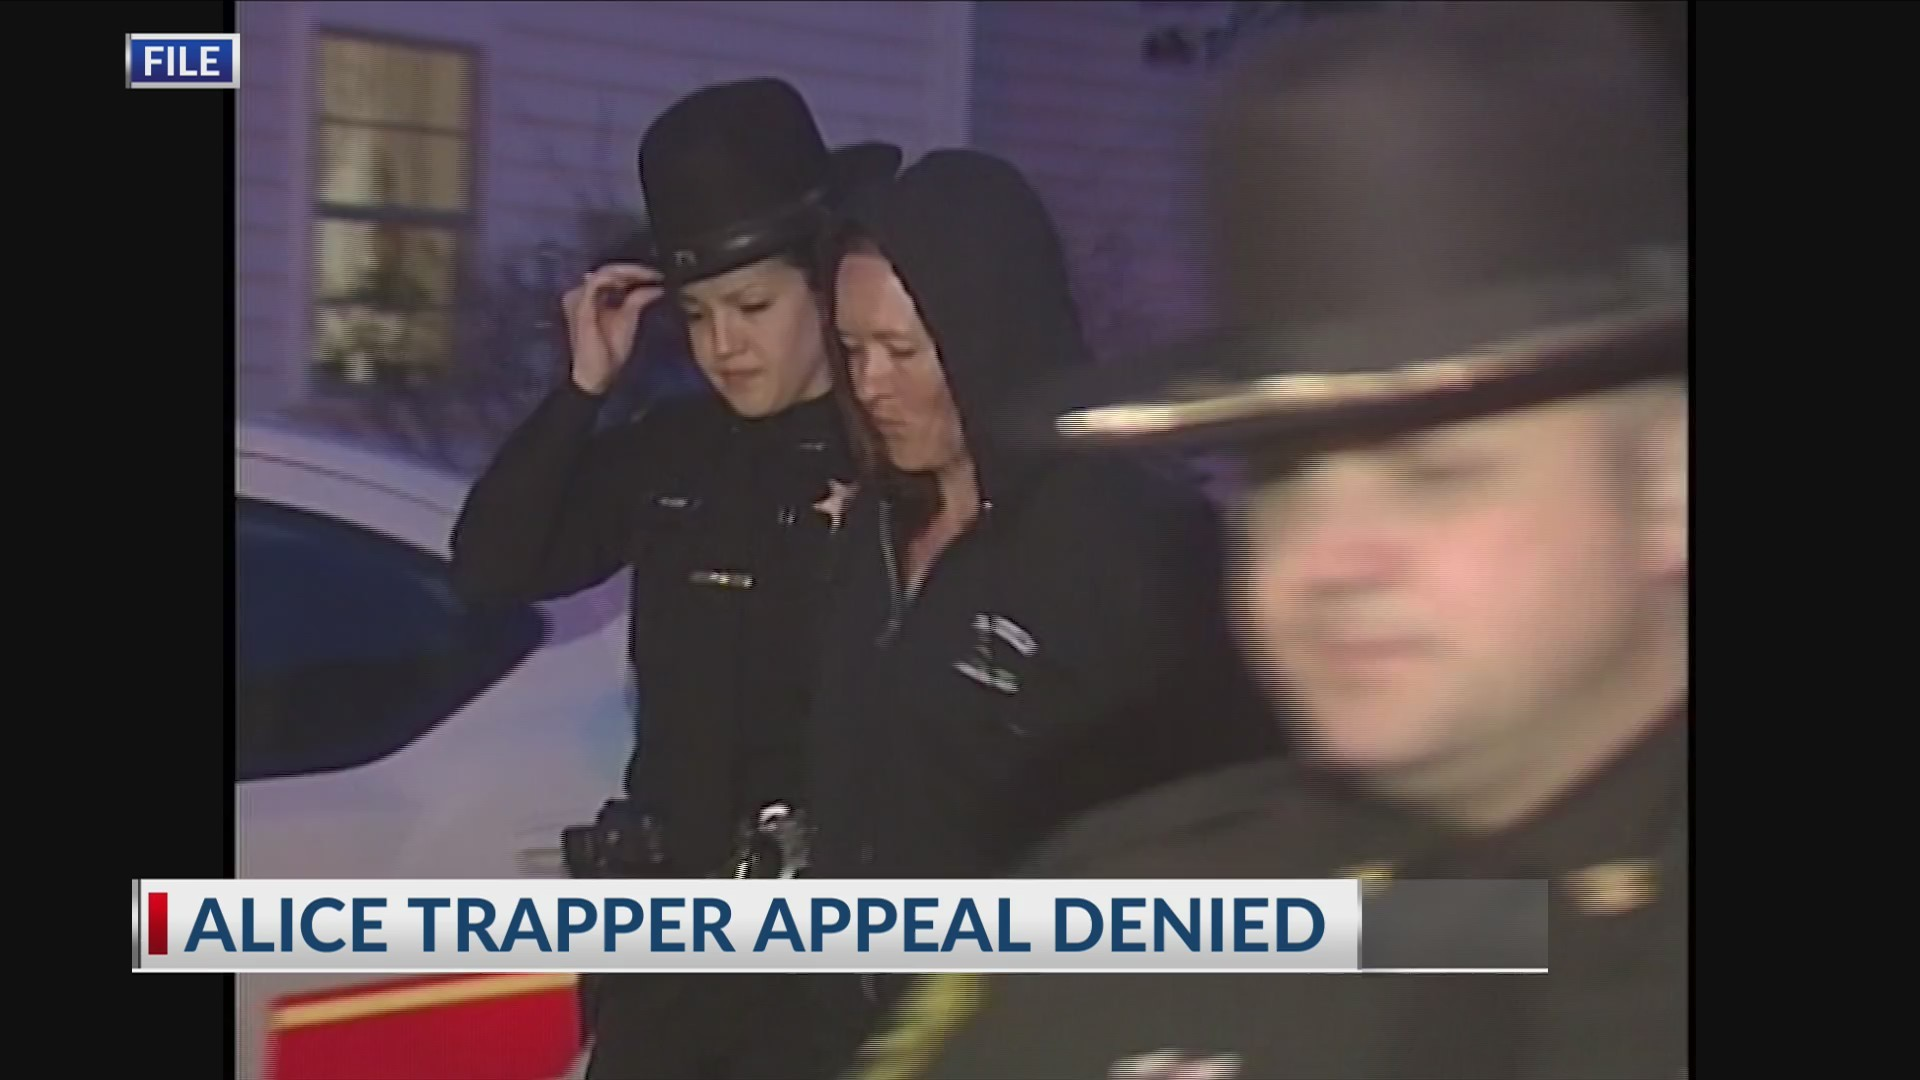 Alice Trapper appeal denied